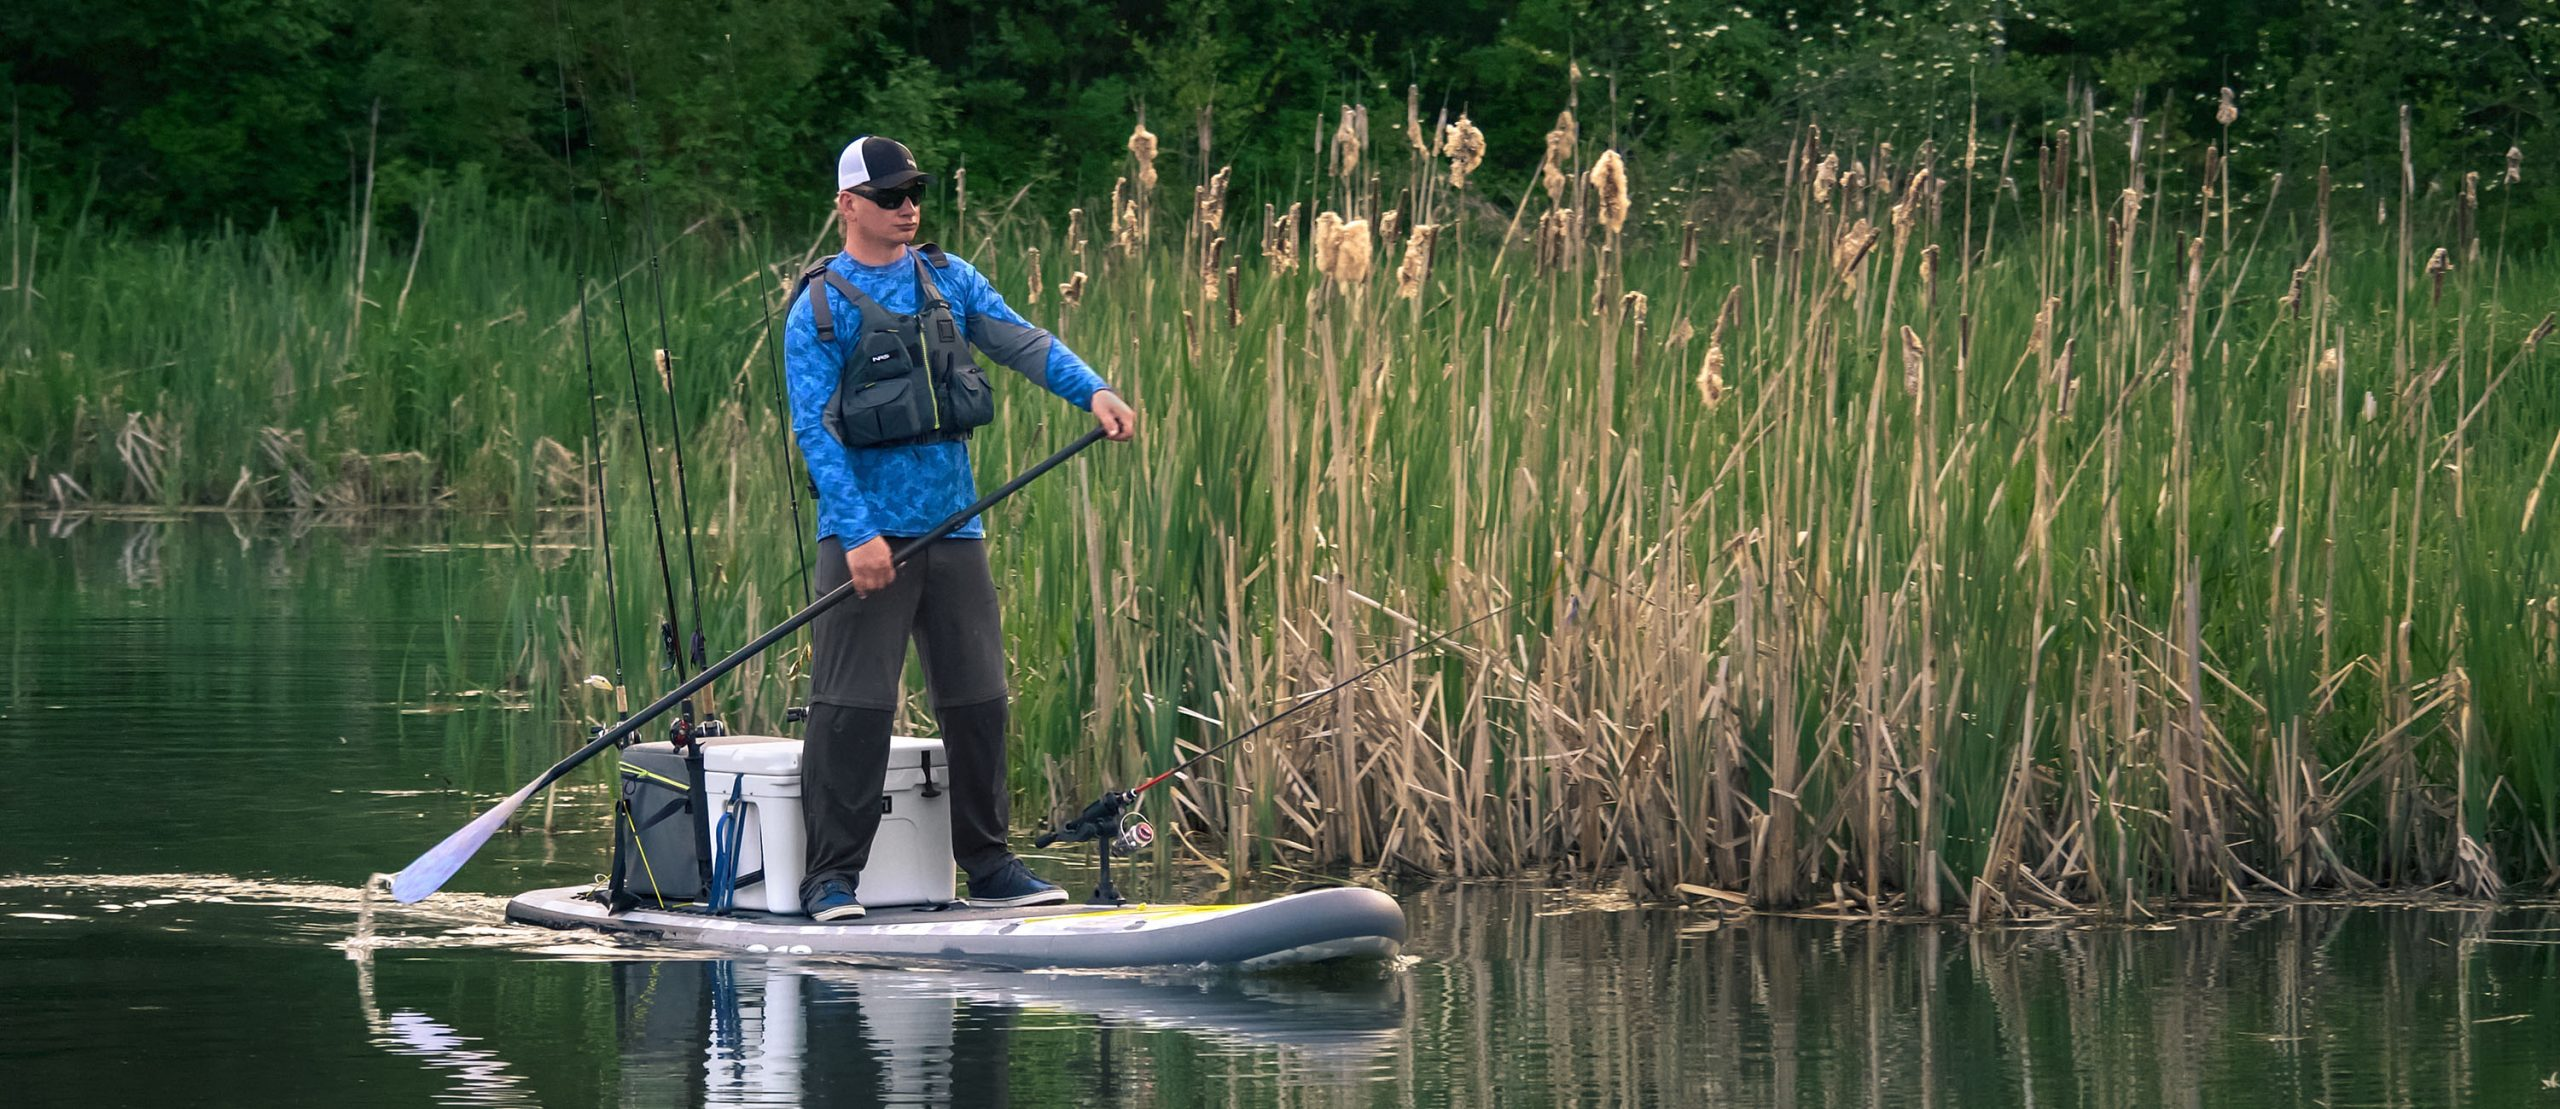 Man standing on paddleboard with fishing rods and cooler behind him.